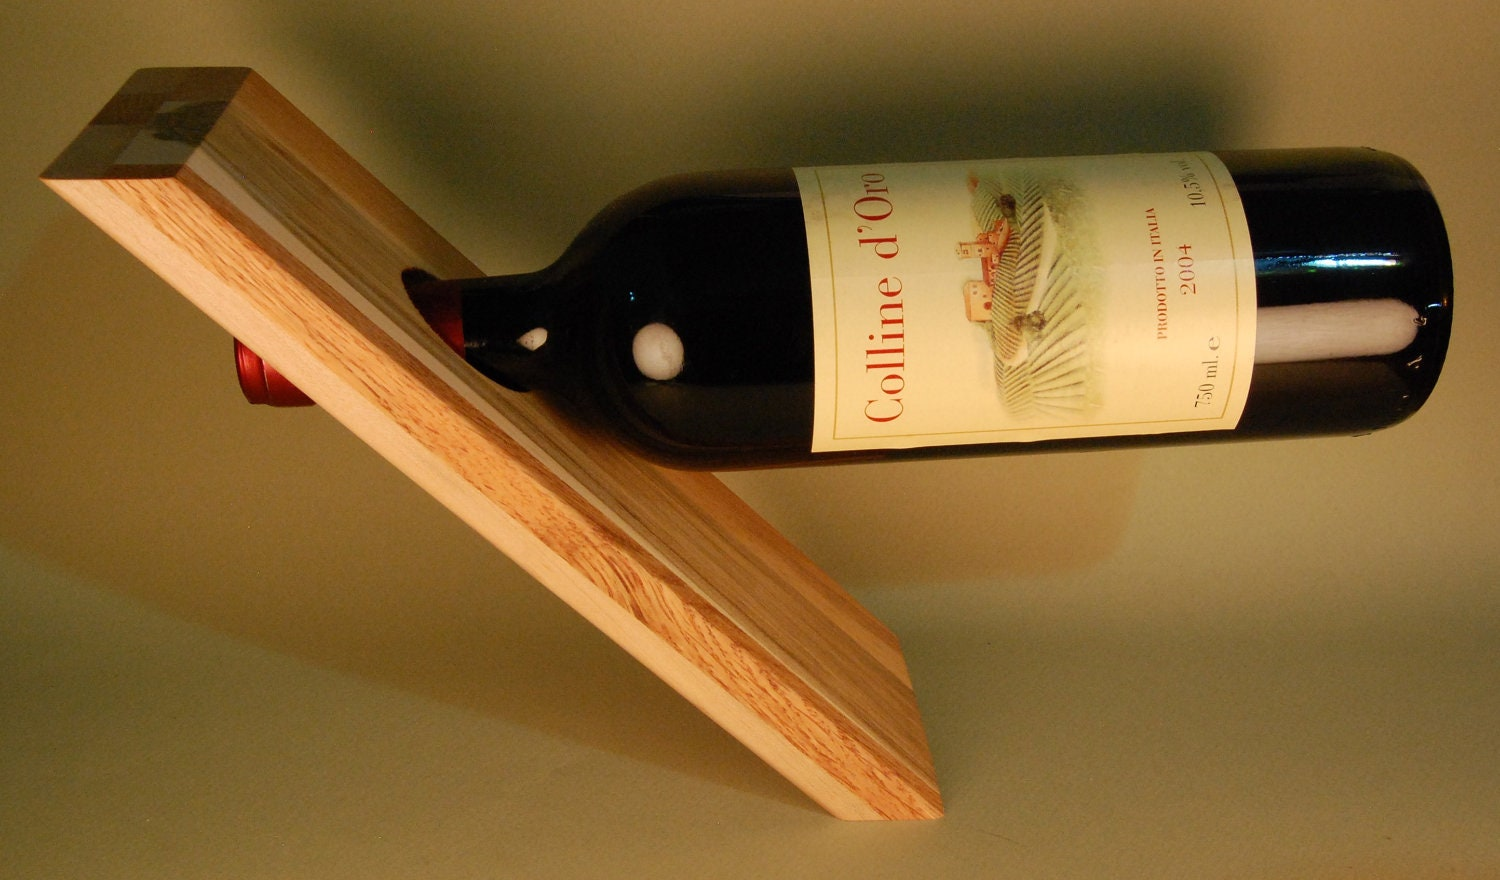 Kinetic wine bottle storage stand custom built from reclaimed - Wine bottle storage angle ...